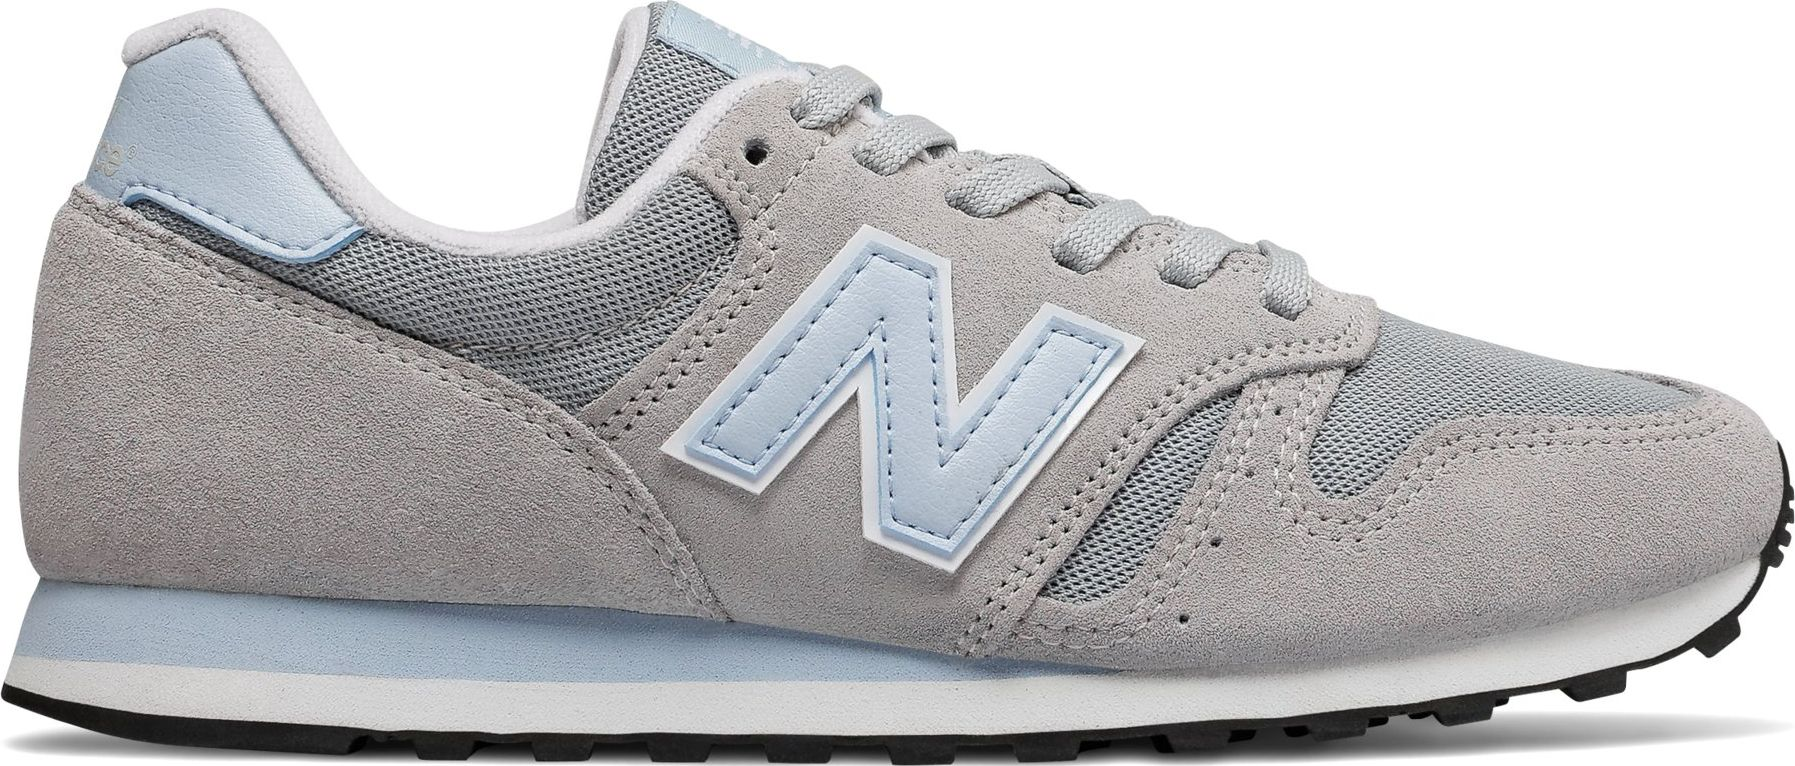 New Balance WL373 Light Aluminum 37